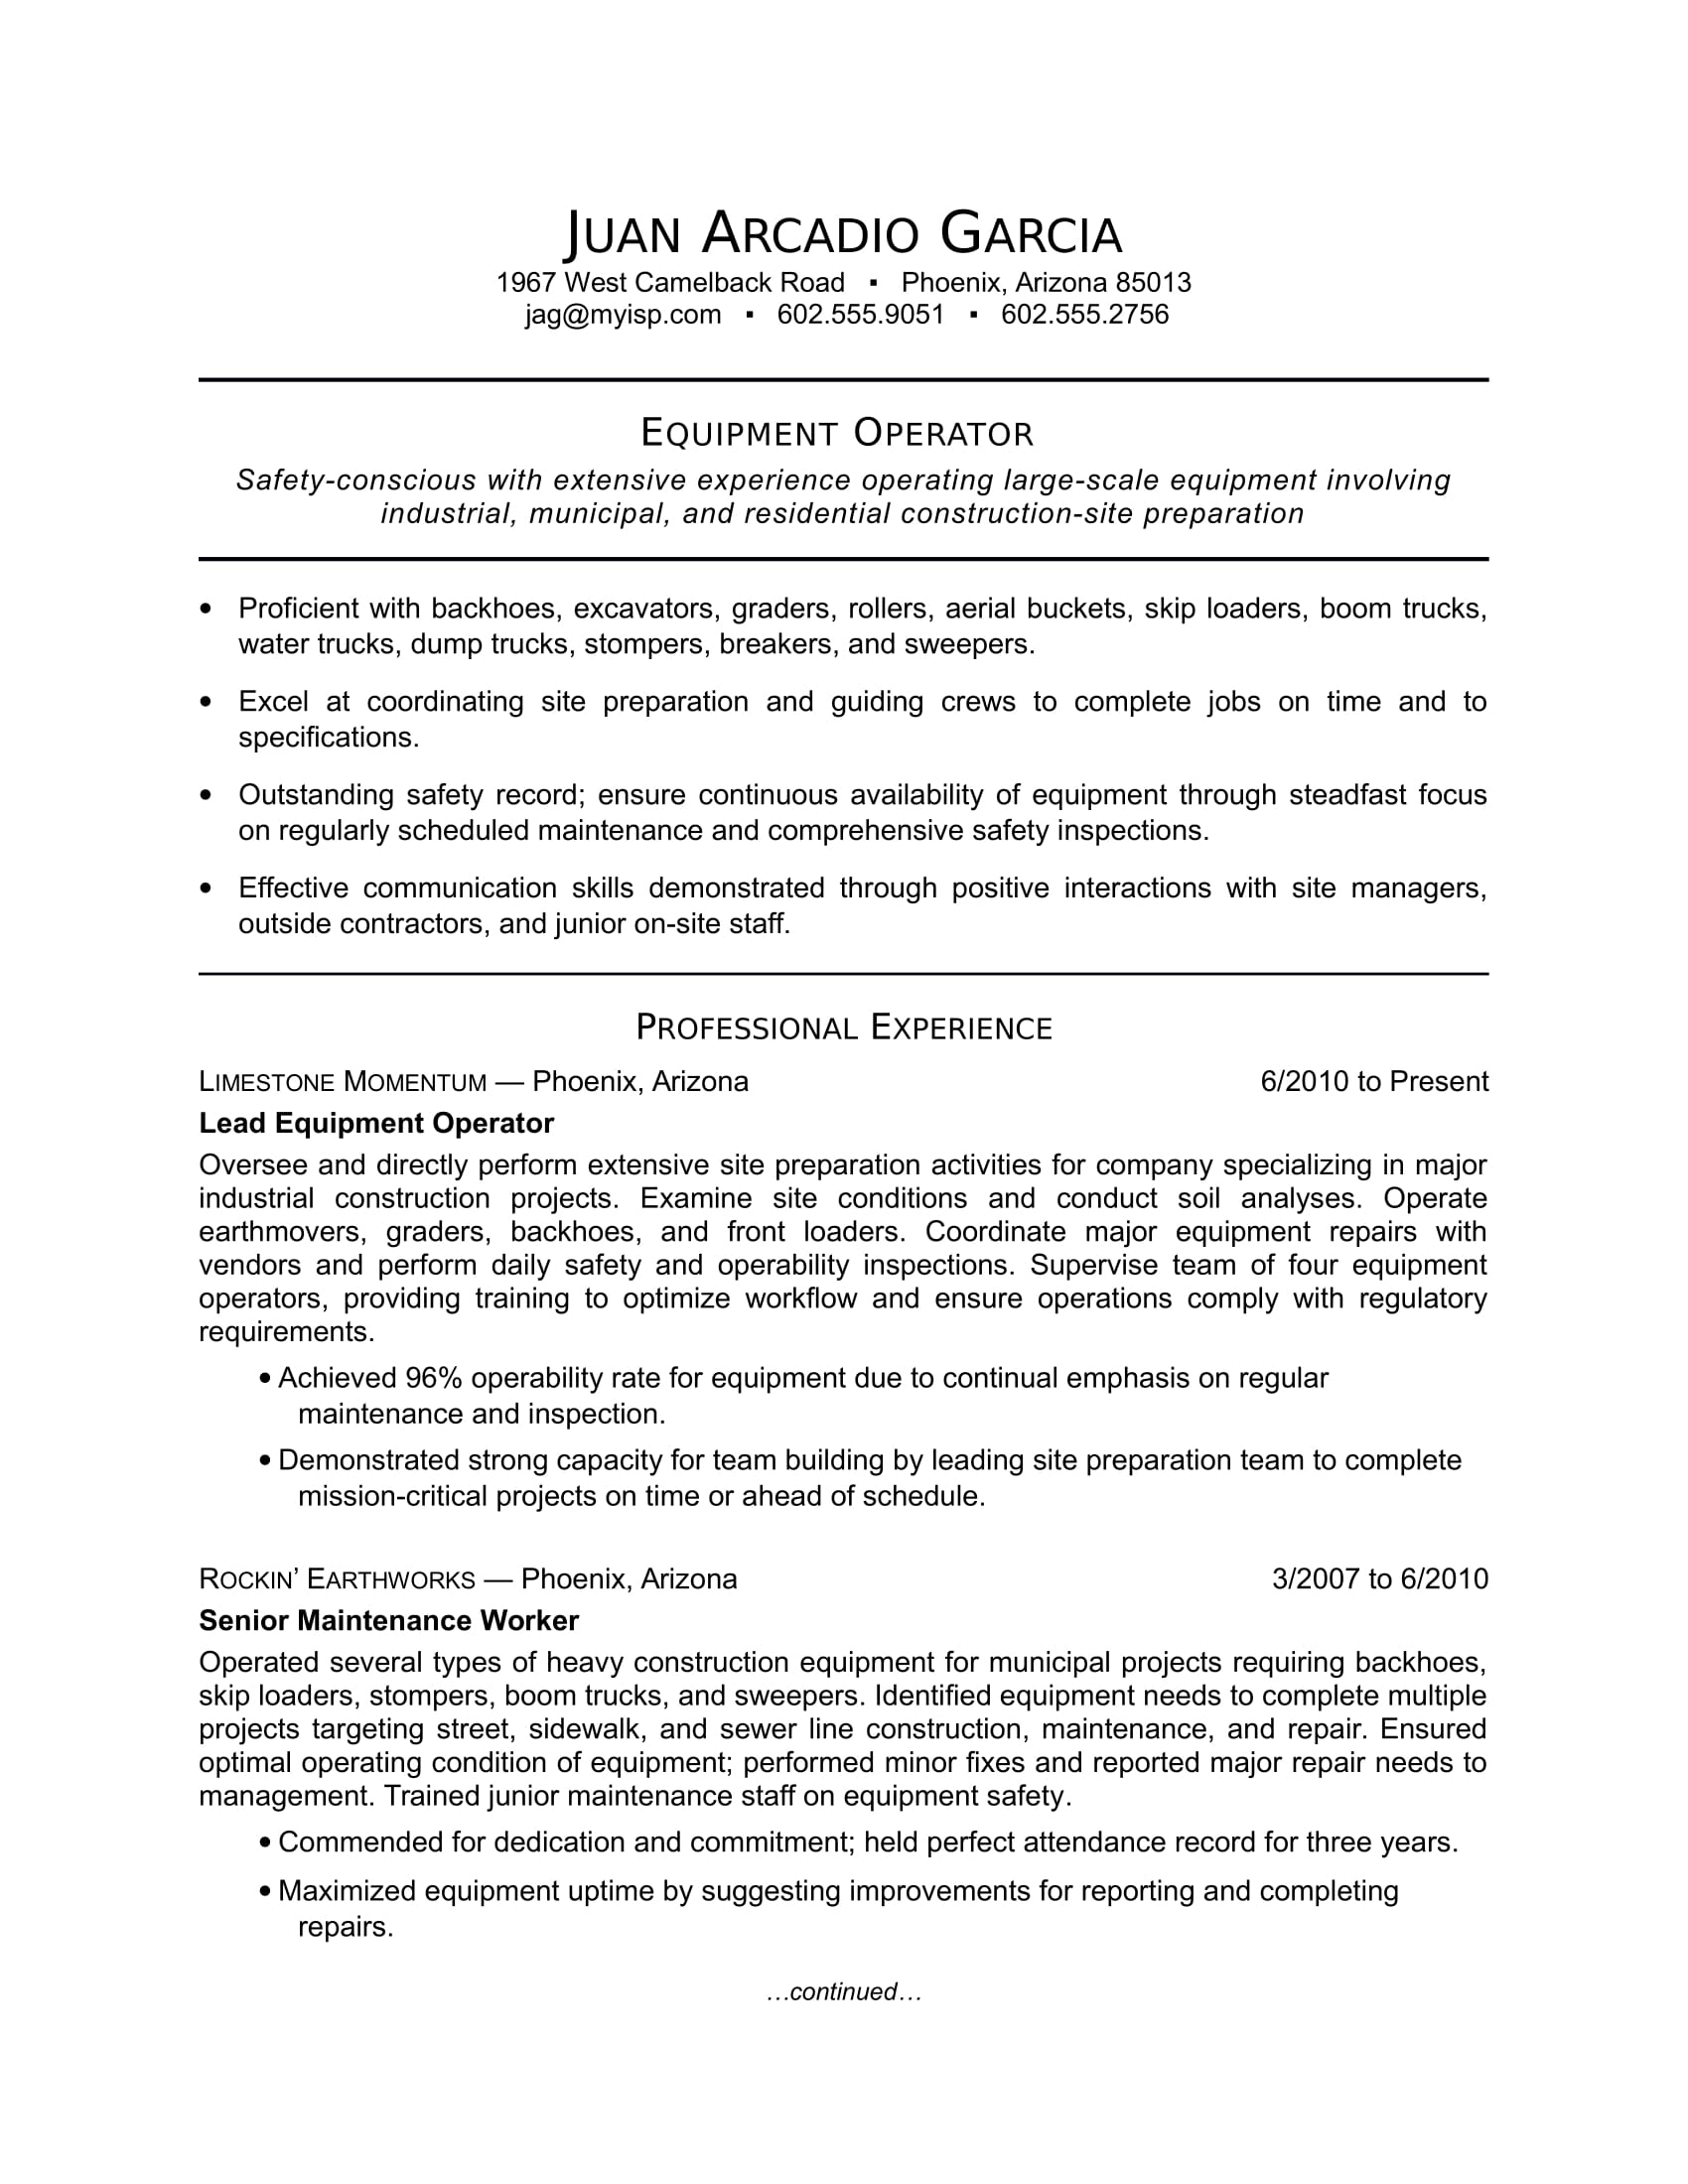 equipment operator resume sample monster com